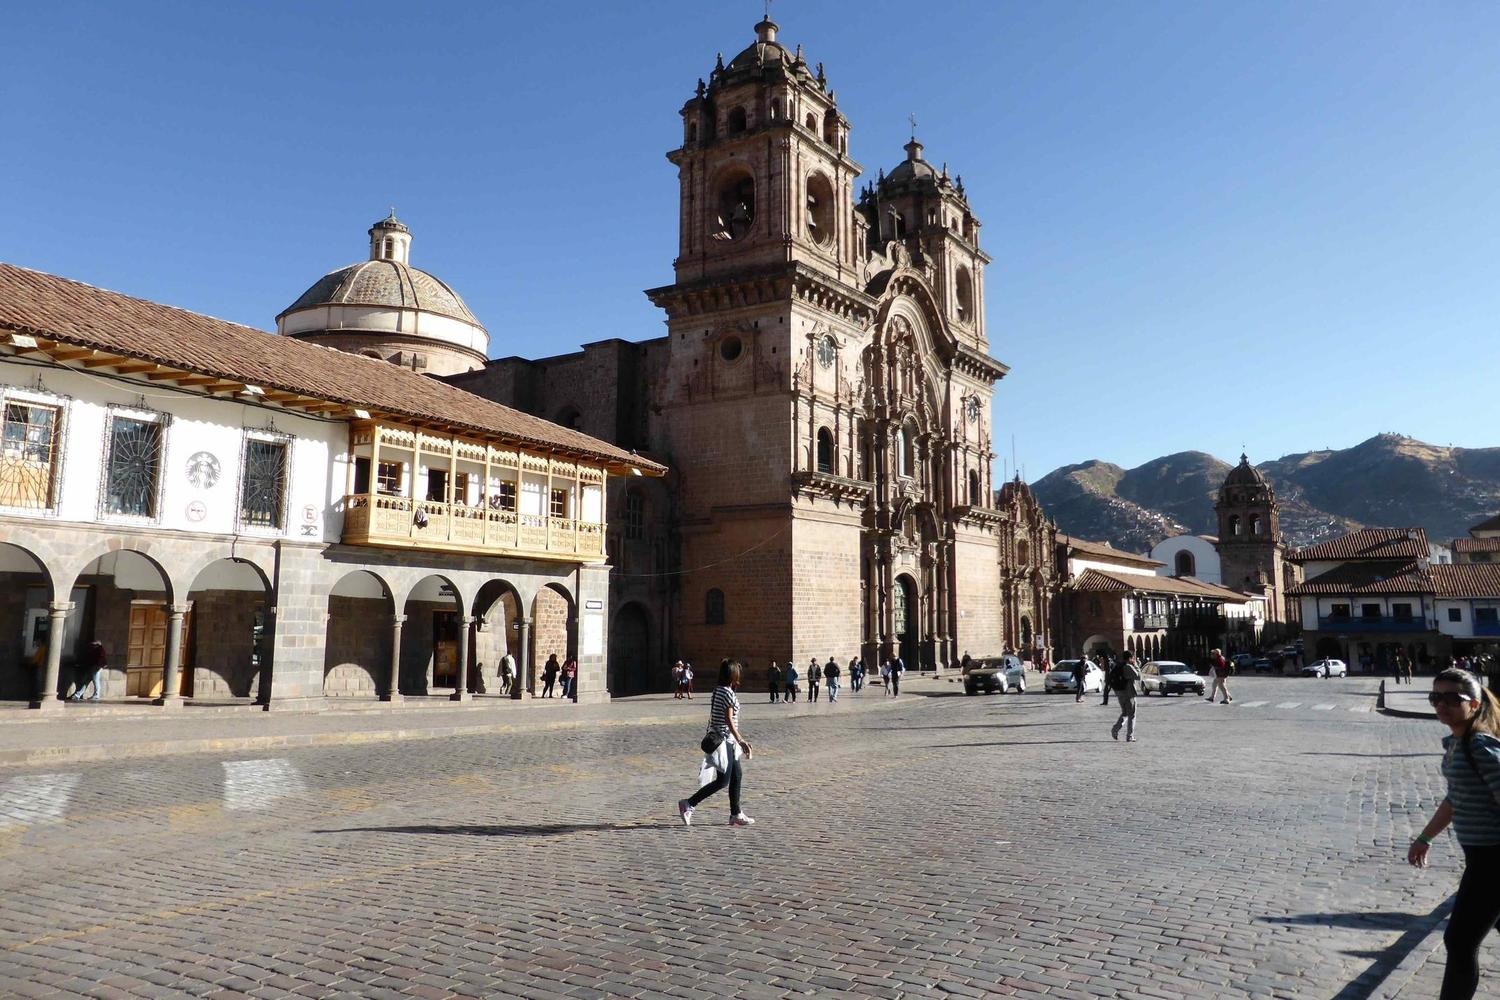 Strolling around the lovely Plaza de Armas in Cusco